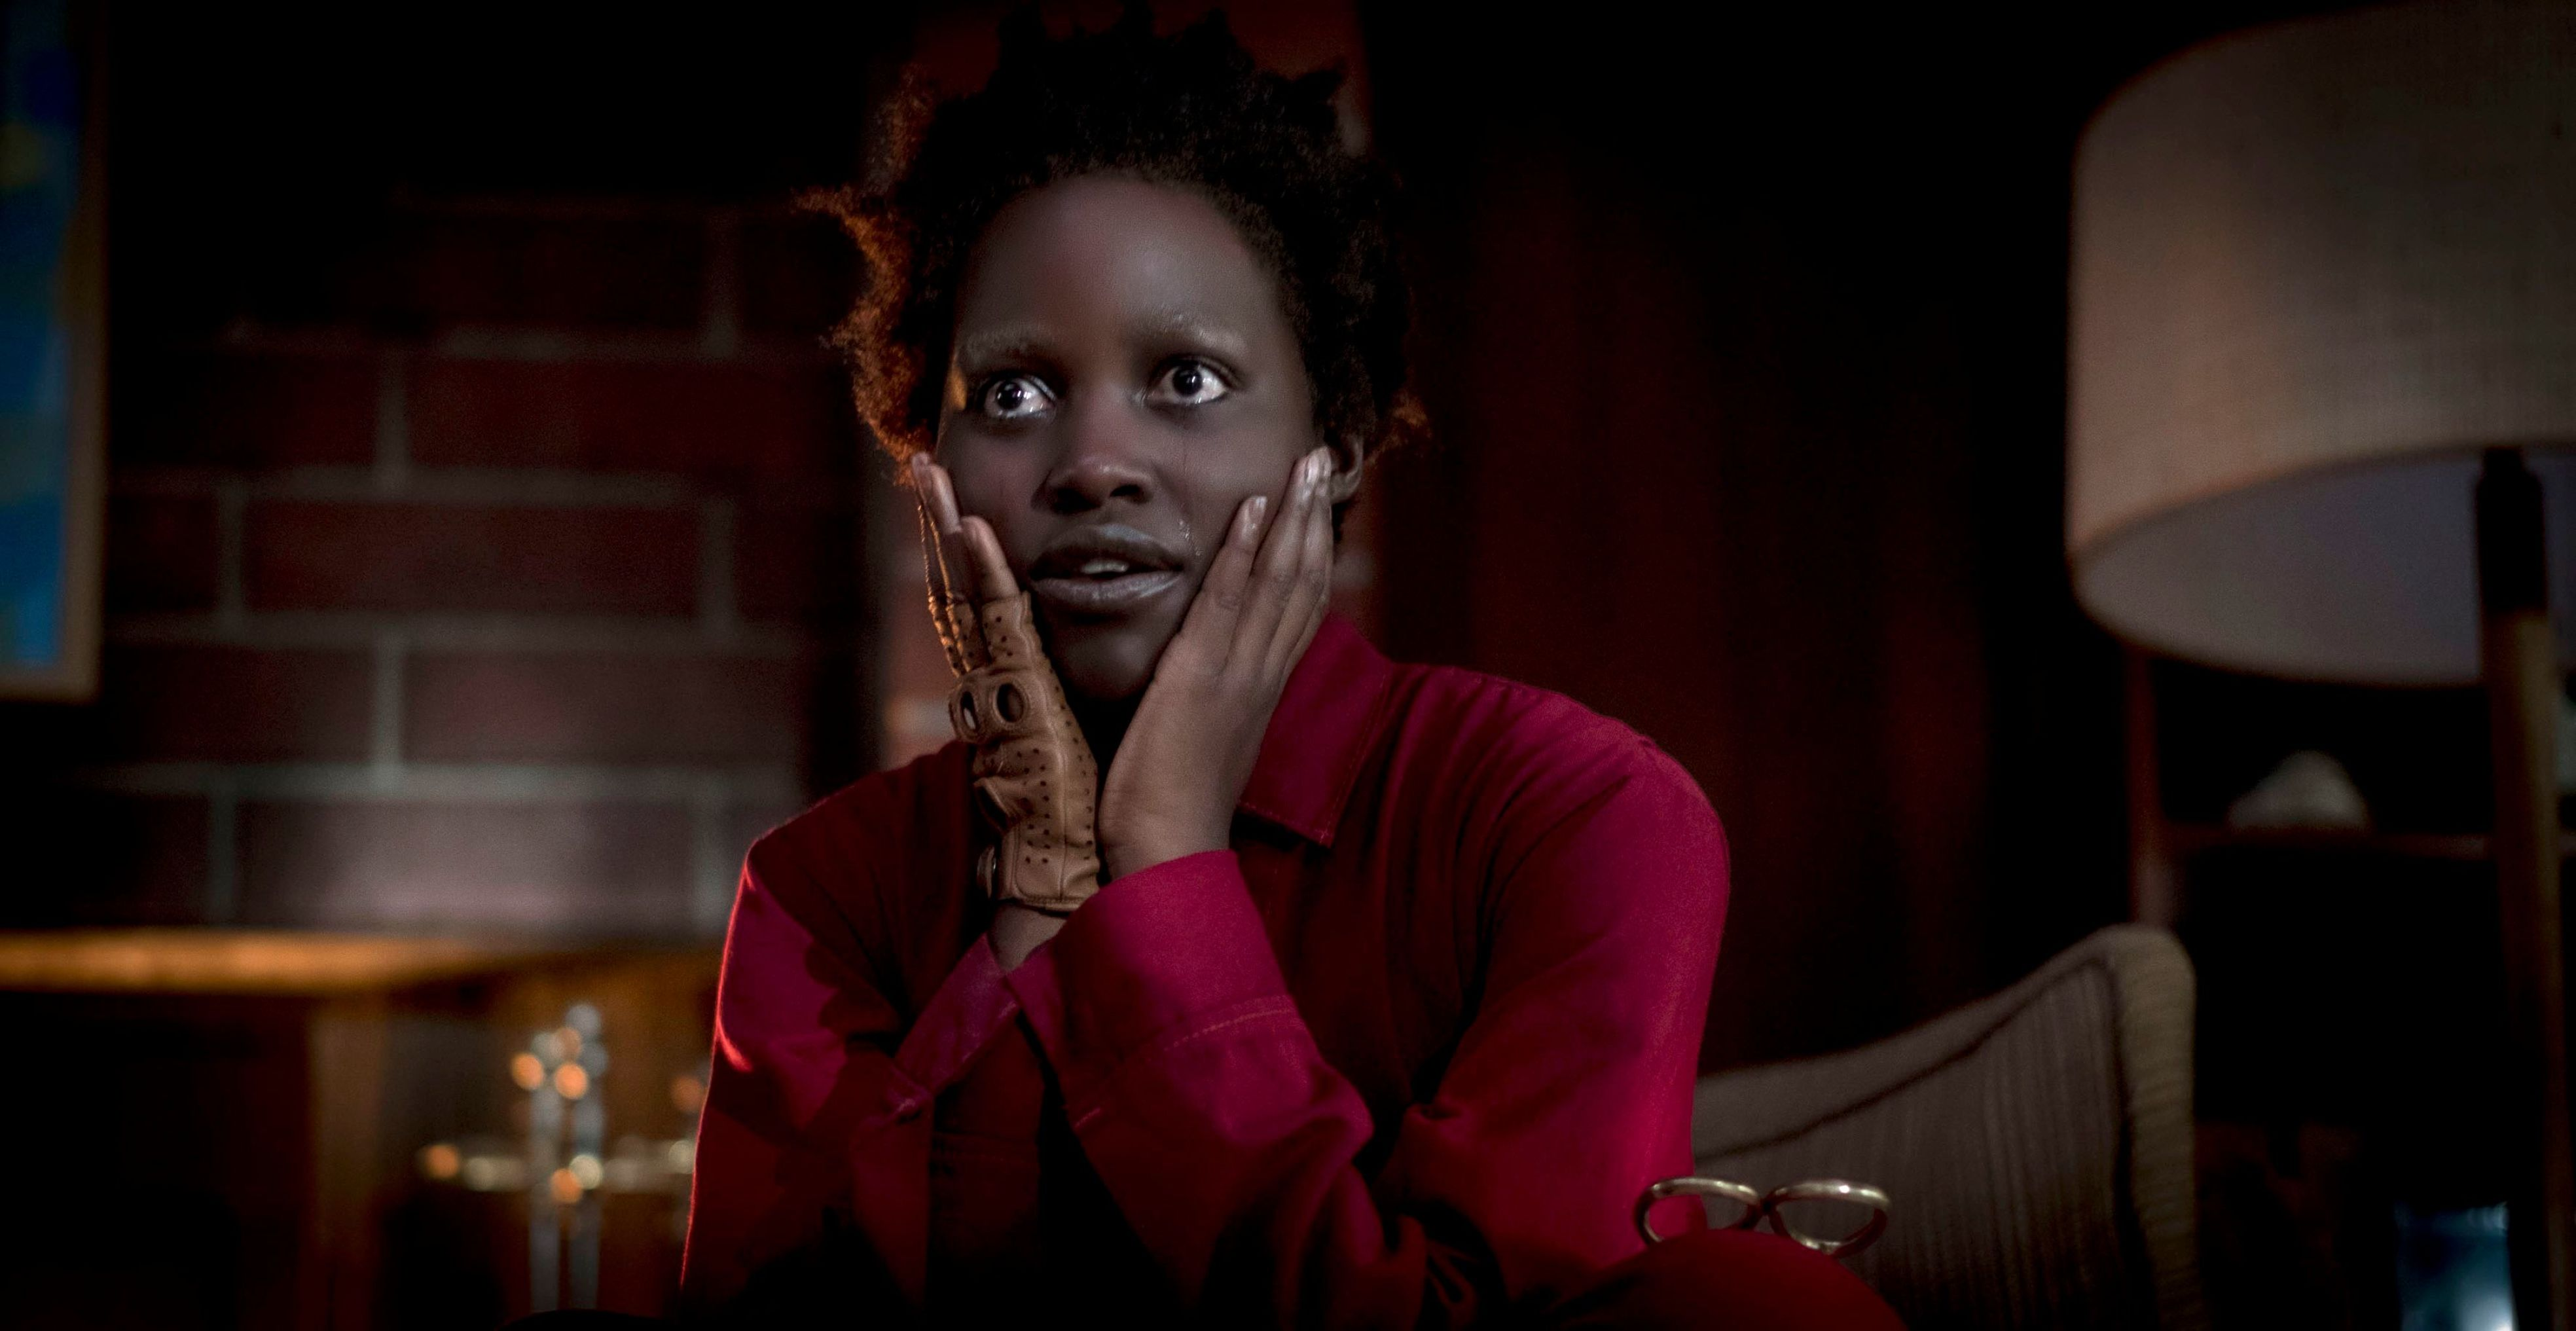 Editorial use only. No book cover usage.Mandatory Credit: Photo by C Barius/Universal/ILM/Kobal/Shutterstock (10162635l) Lupita Nyong'o as Red 'Us' Film - 2019 A family's serenity turns to chaos when a group of doppelgängers begins to terrorize them.